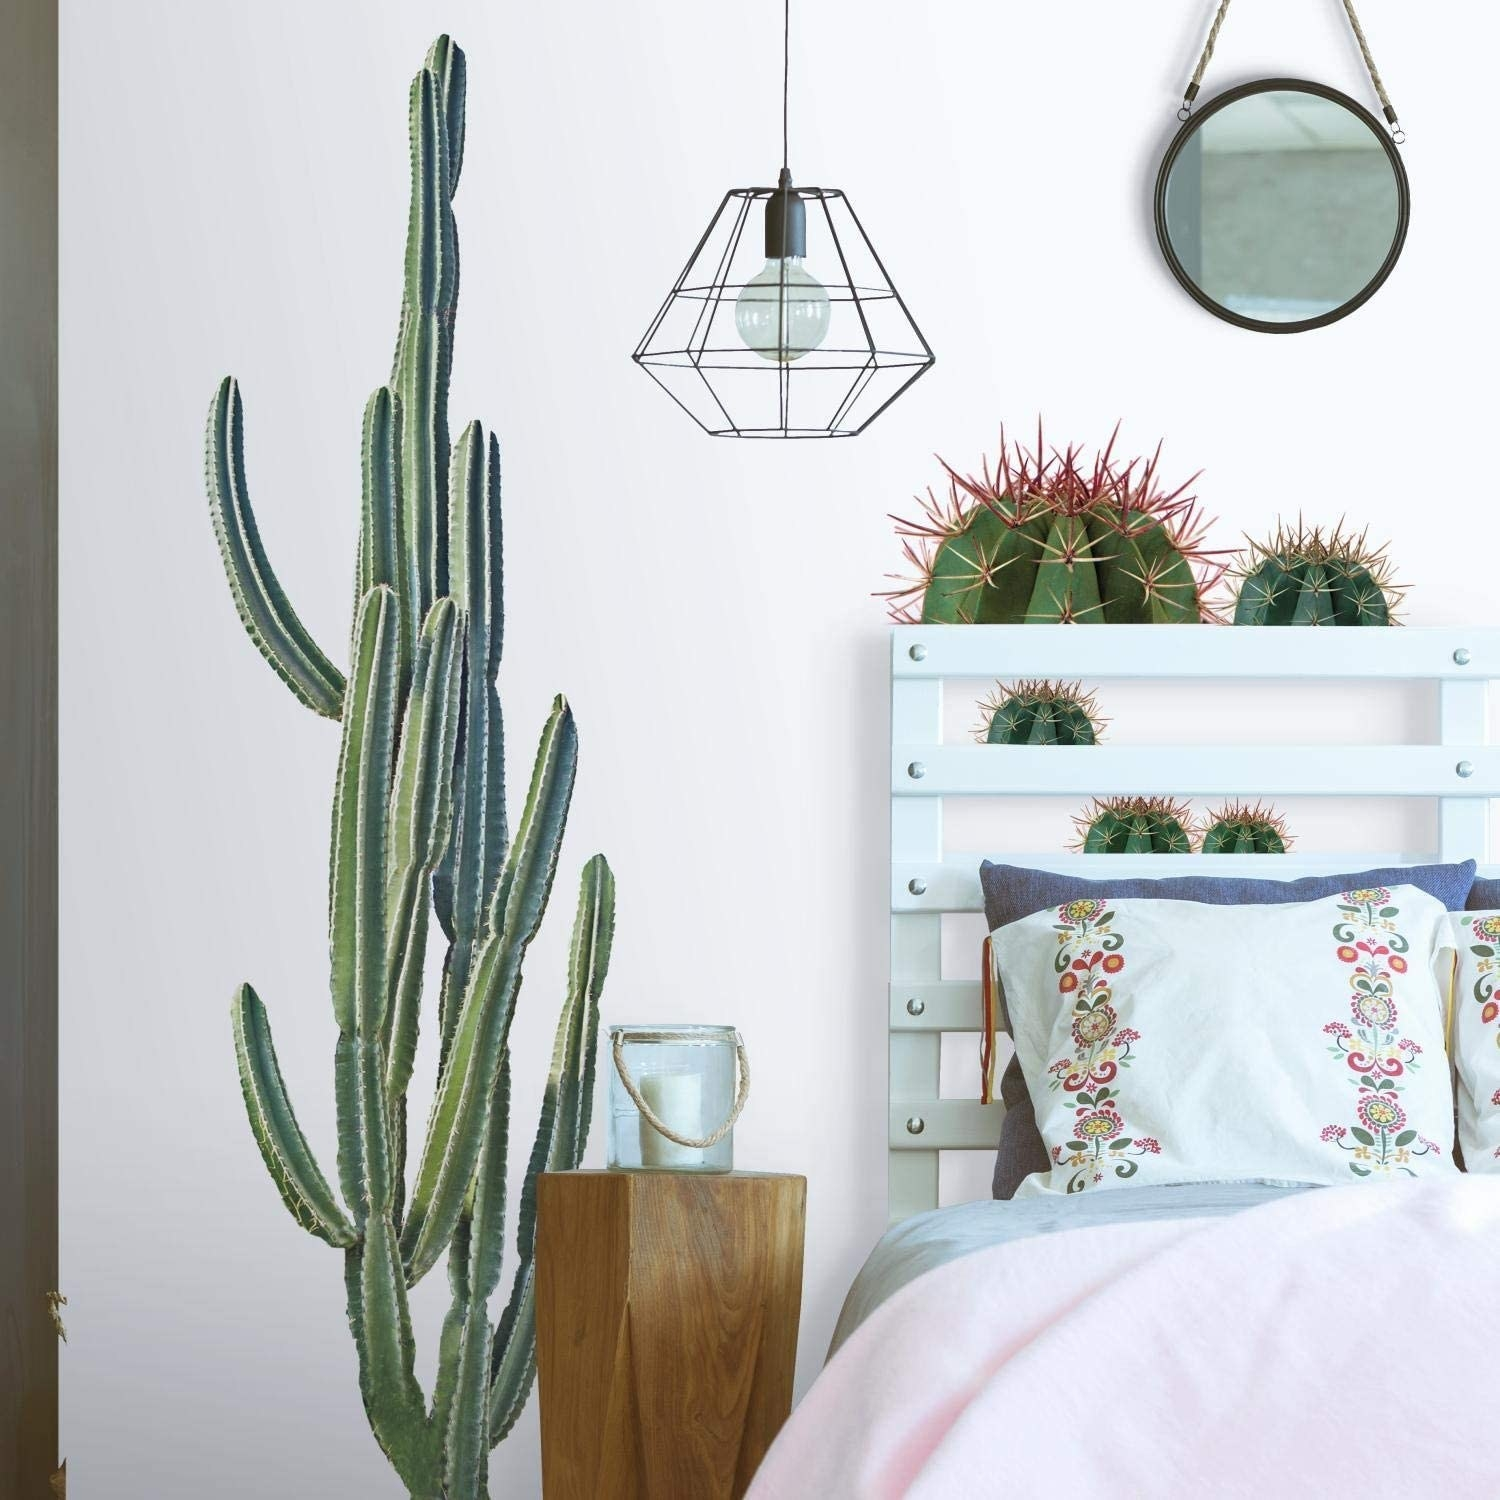 Four cactus wall decals on a bedroom wall behind a bed and nightstand